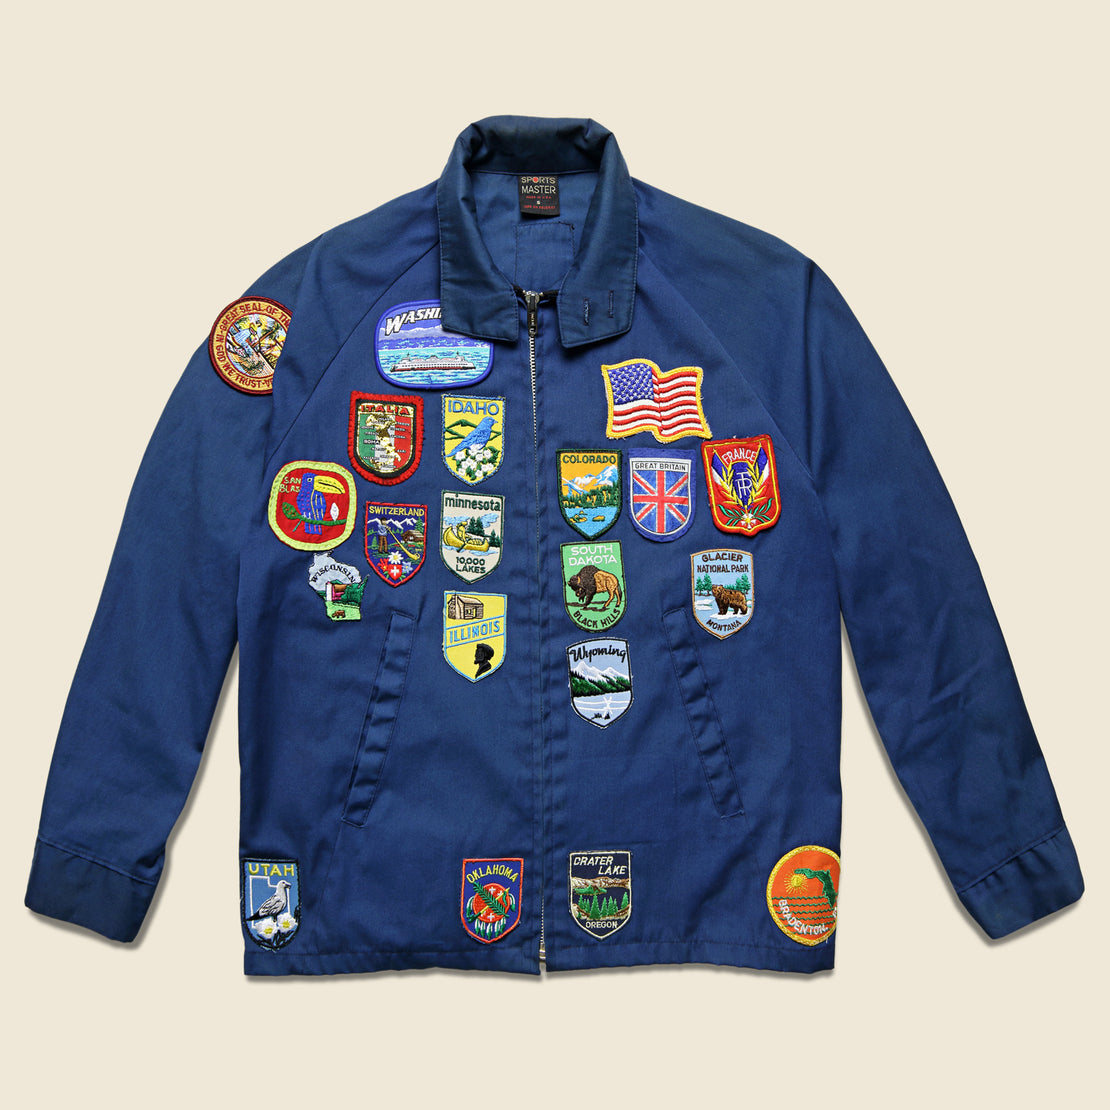 Vintage Barracuda-Style Jacket with Patches